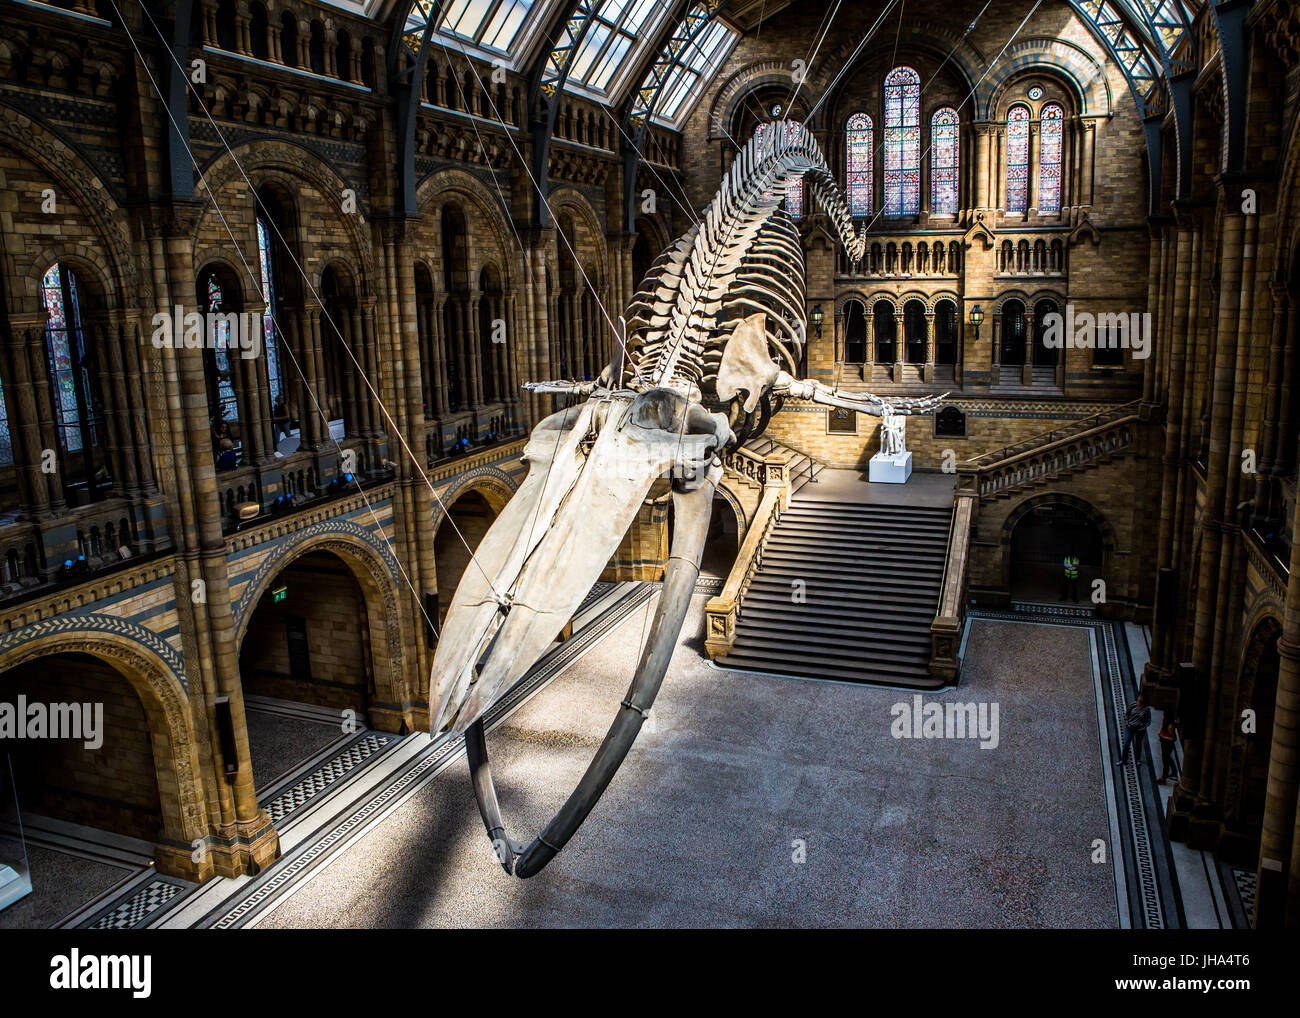 Hope, Blue Whale, Natural History Museum - Stock Image